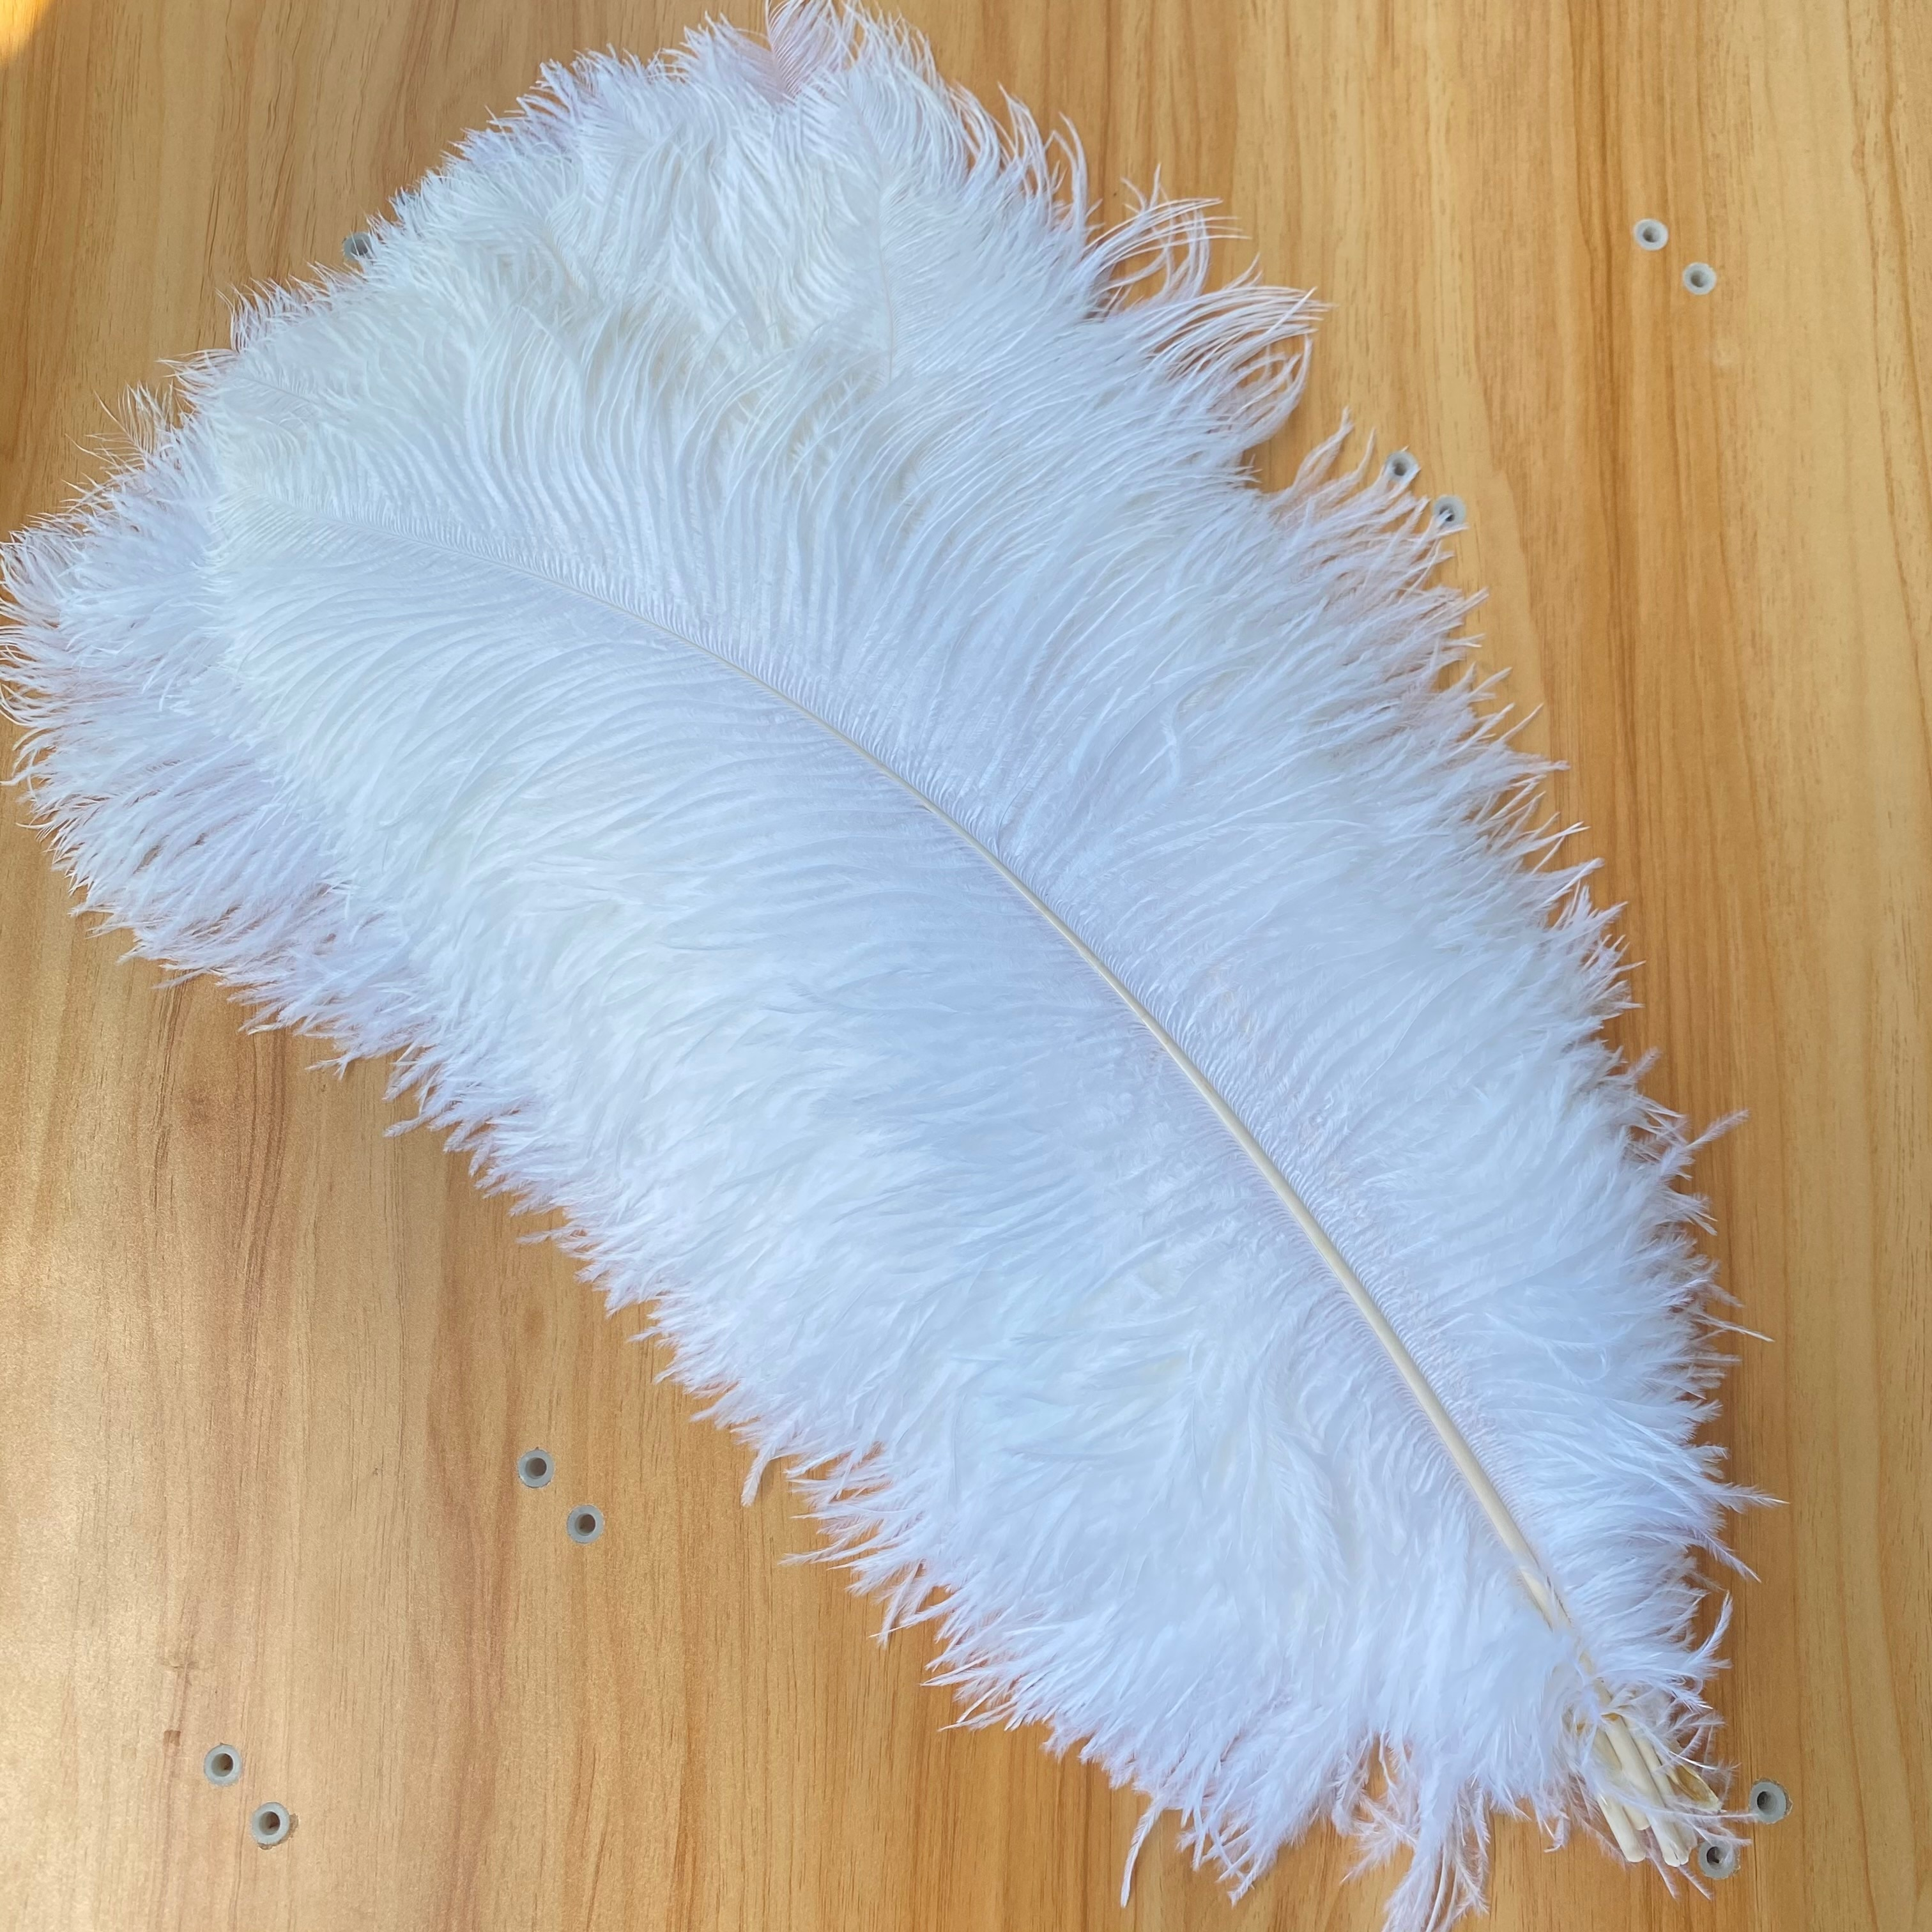 wholesale-20pcs-lot-beautiful-white-ostrich-feather-50-55cm-20-22inch-wedding-home-carnival-party-accessories-plumes-plume